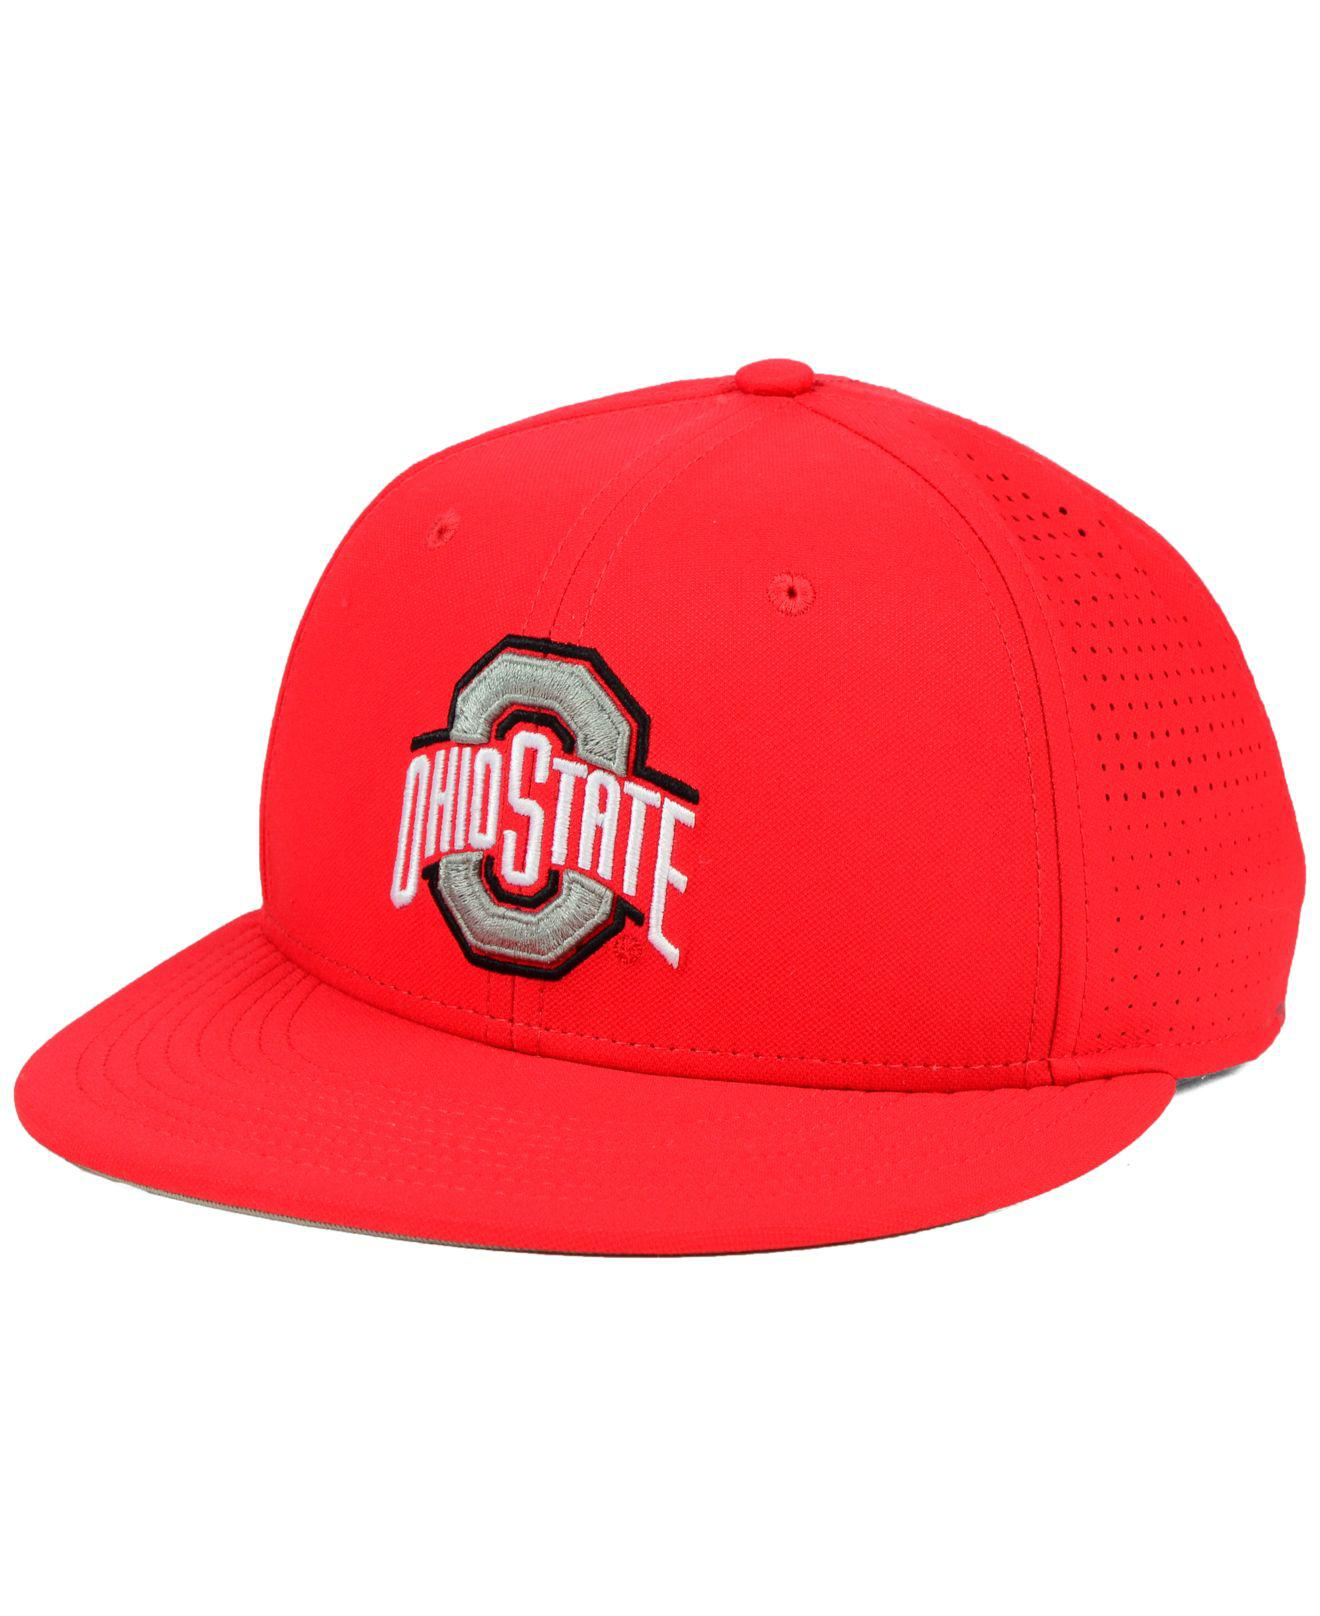 31eda625f5c50 Lyst - Nike Ohio State Buckeyes True Vapor Fitted Cap in Red for Men